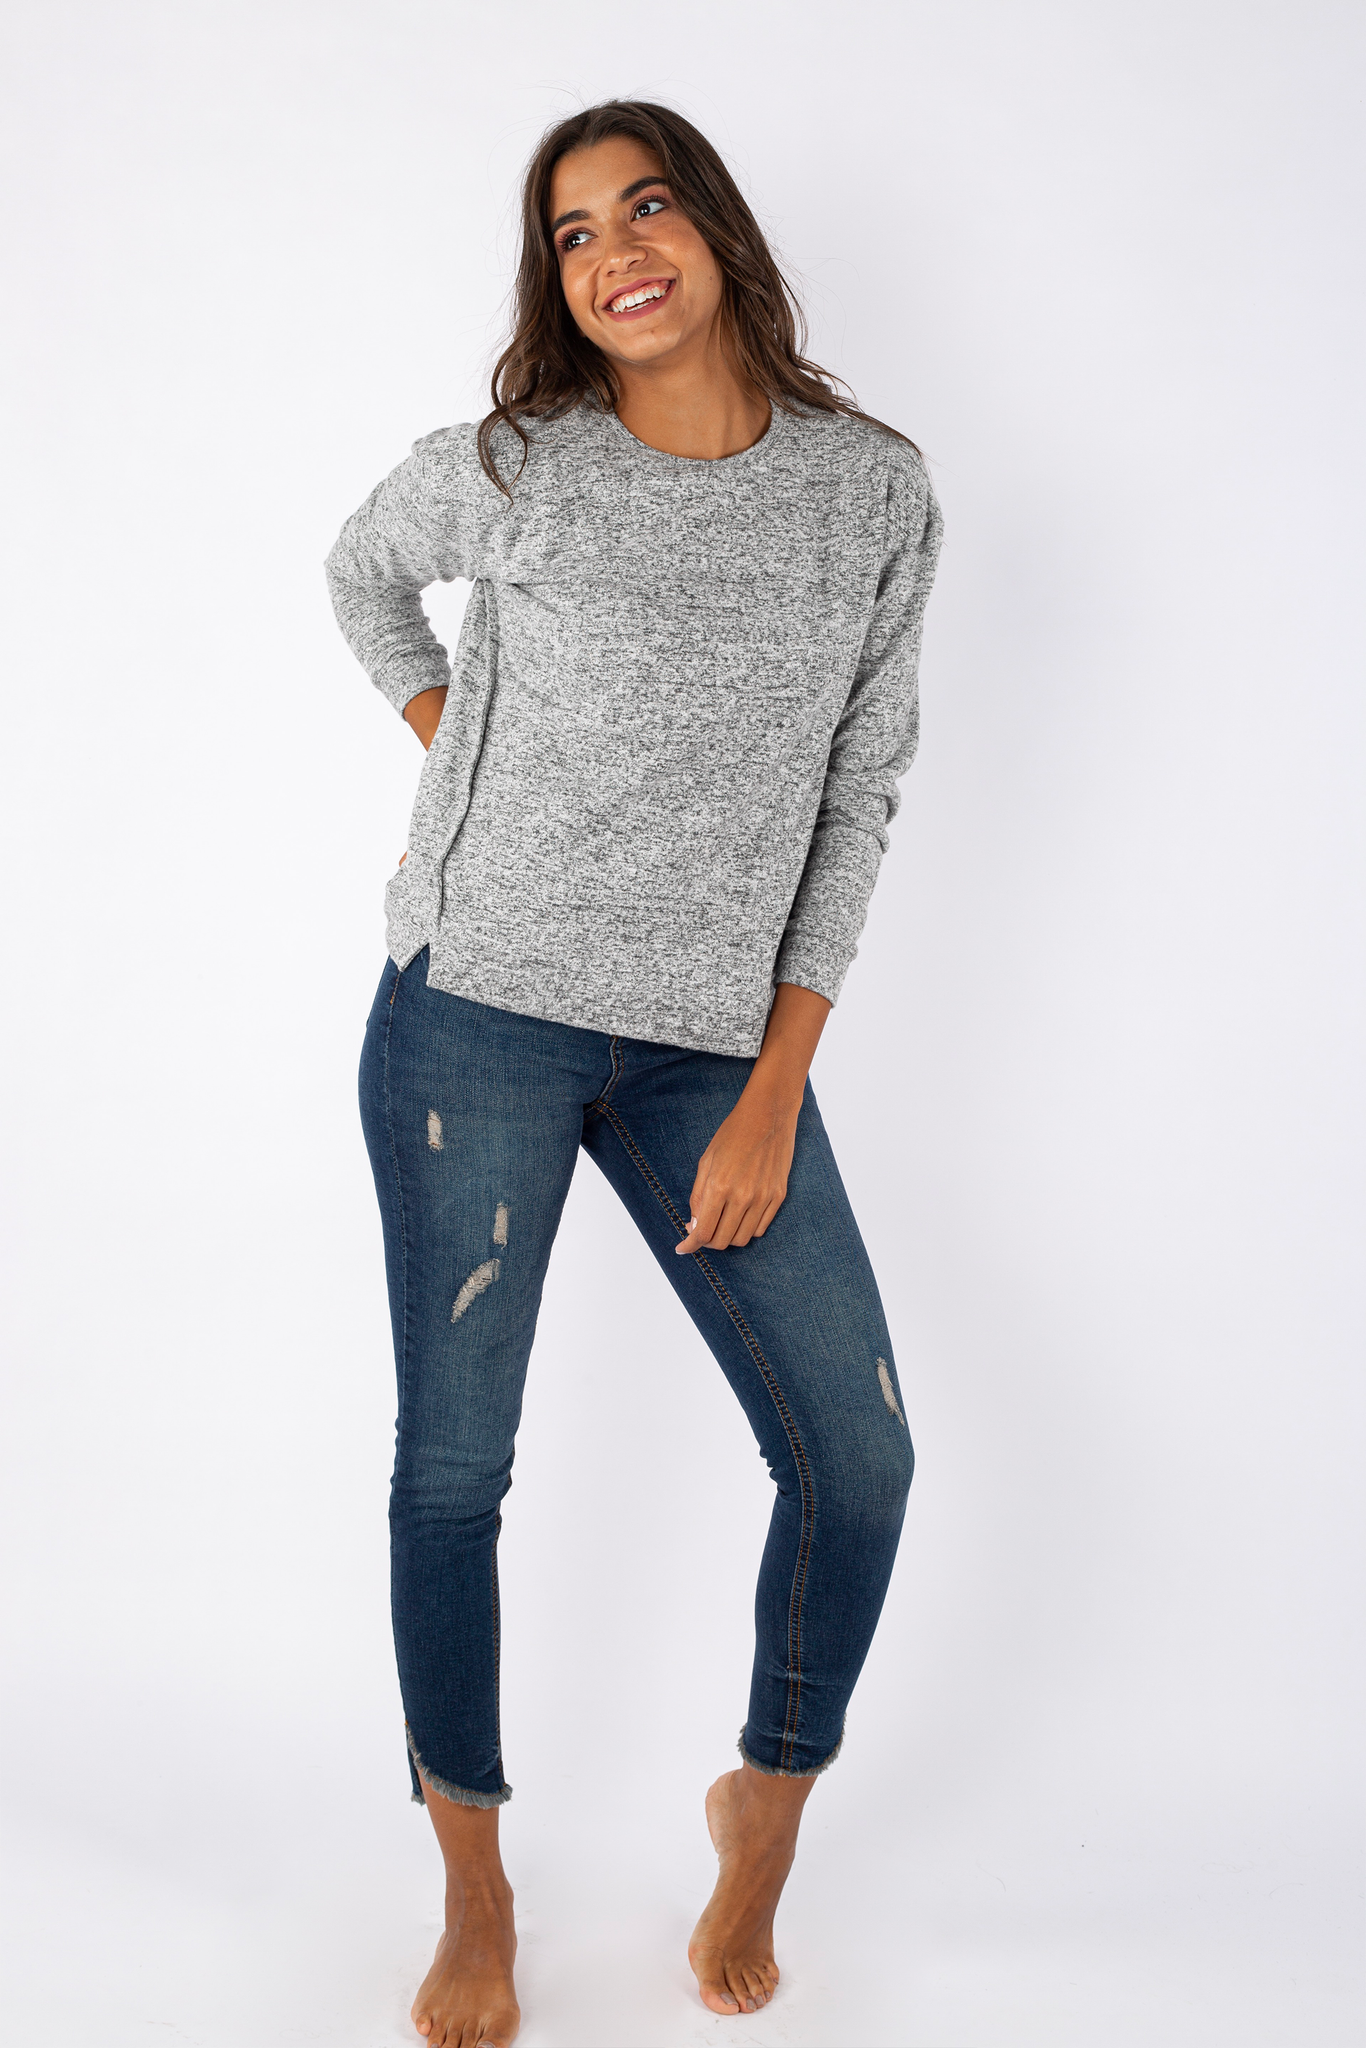 Short Sweater with Slits - 140003